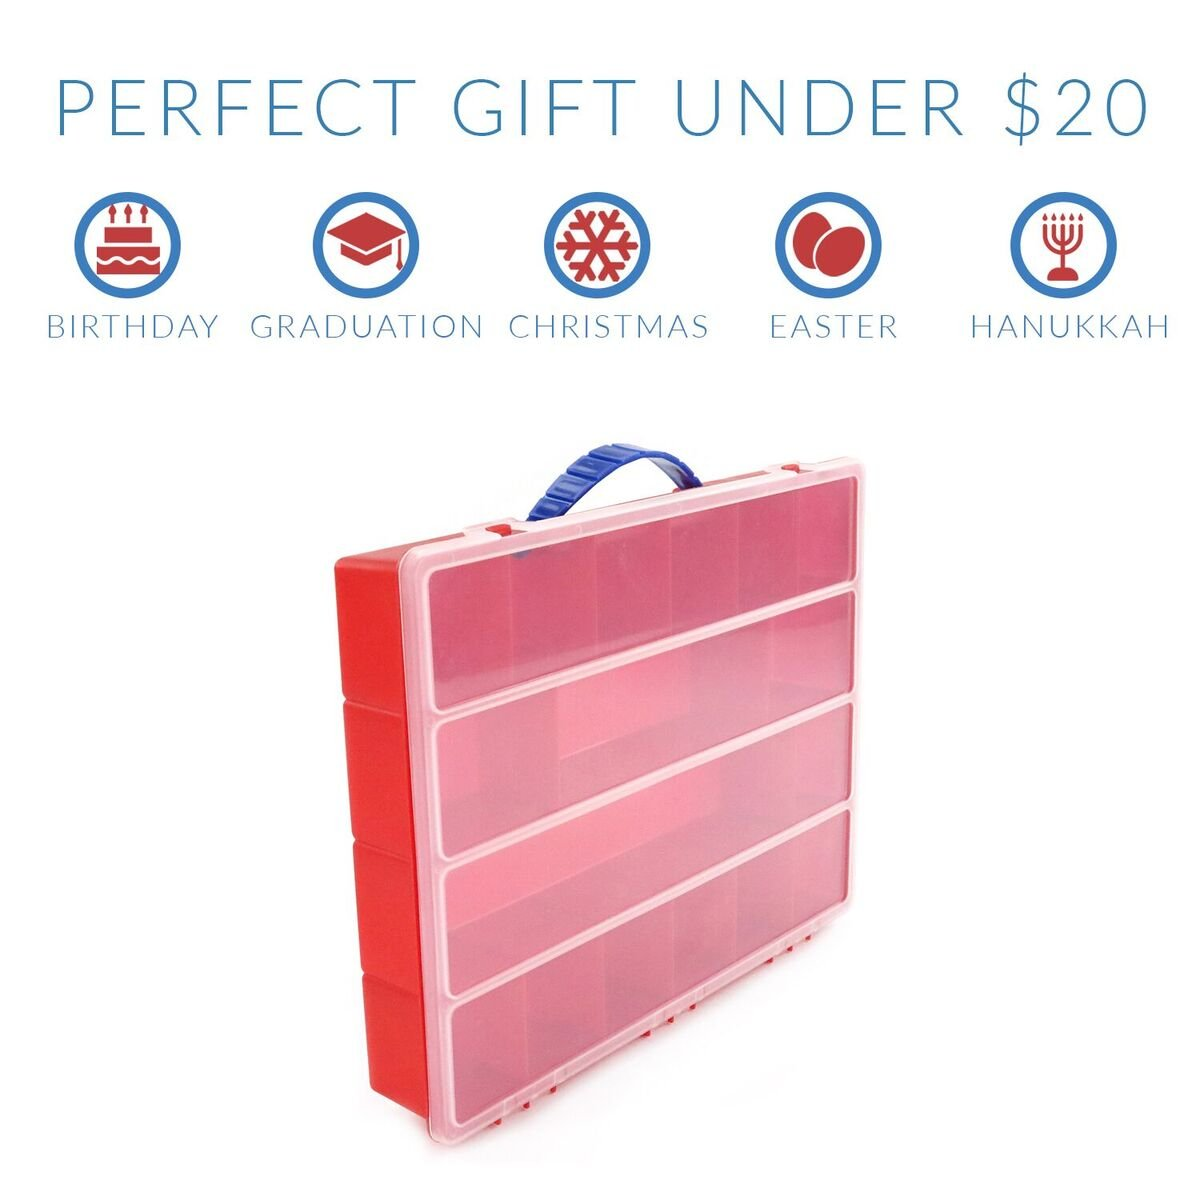 Red LMB100 Life Made Better My Egg Crate Storage Organizer By Compatible with the Hatchimals and Hatchimal Colleggtibles brands Durable Carrying Case For Mini Eggs Easter Eggs /& Speckled Eggs